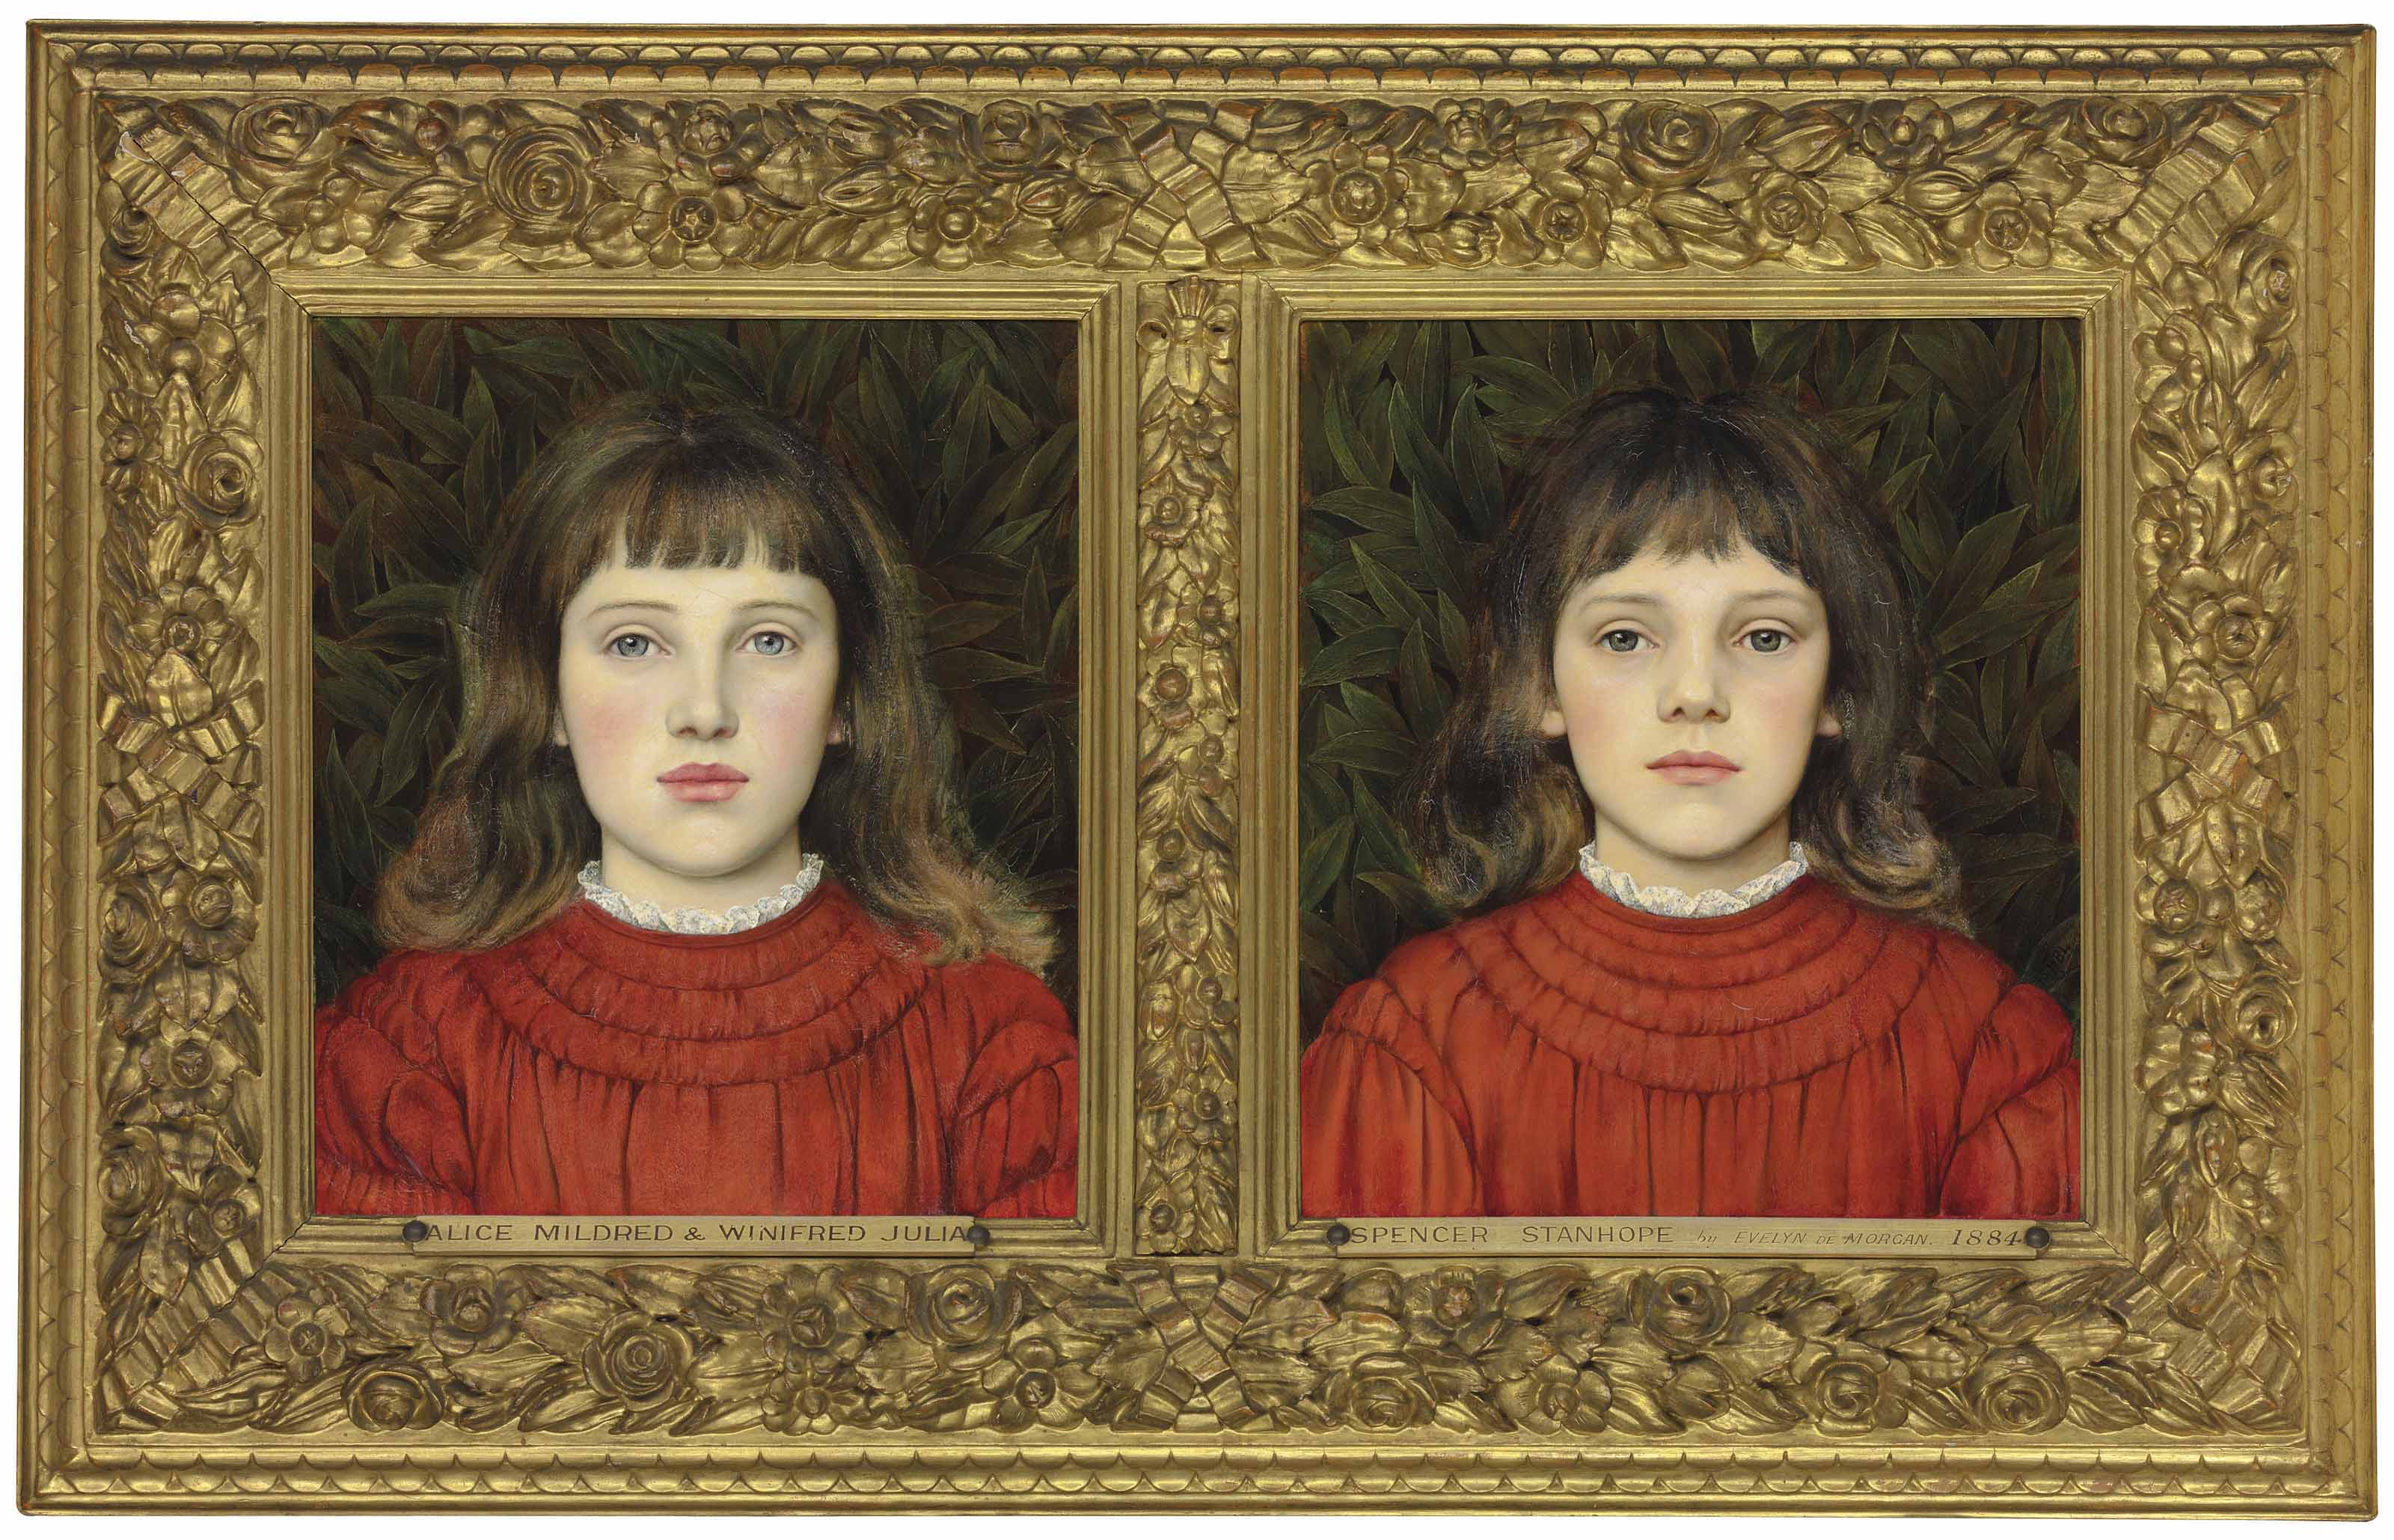 Portraits of Alice Mildred and Winifred Julia Spencer Stanhope